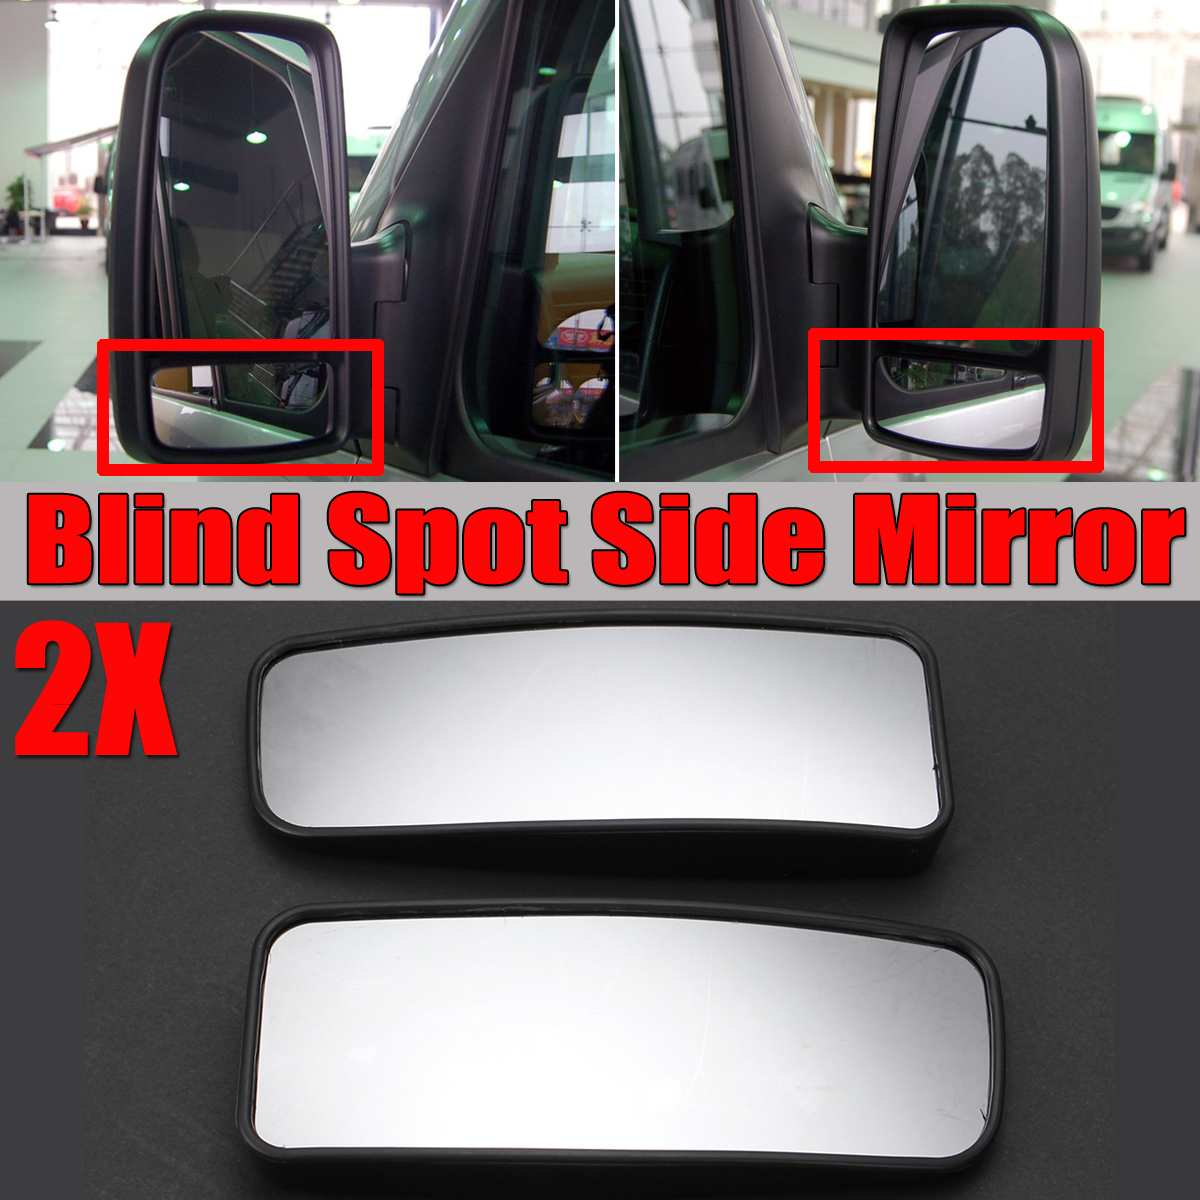 Car Door Wing Rearview Side Mirror Lower Glass Blind Spot For Dodge For Mercedes For Sprinter For Vans 2500 3500 2007+|Mirror & Covers|Automobiles & Motorcycles - title=